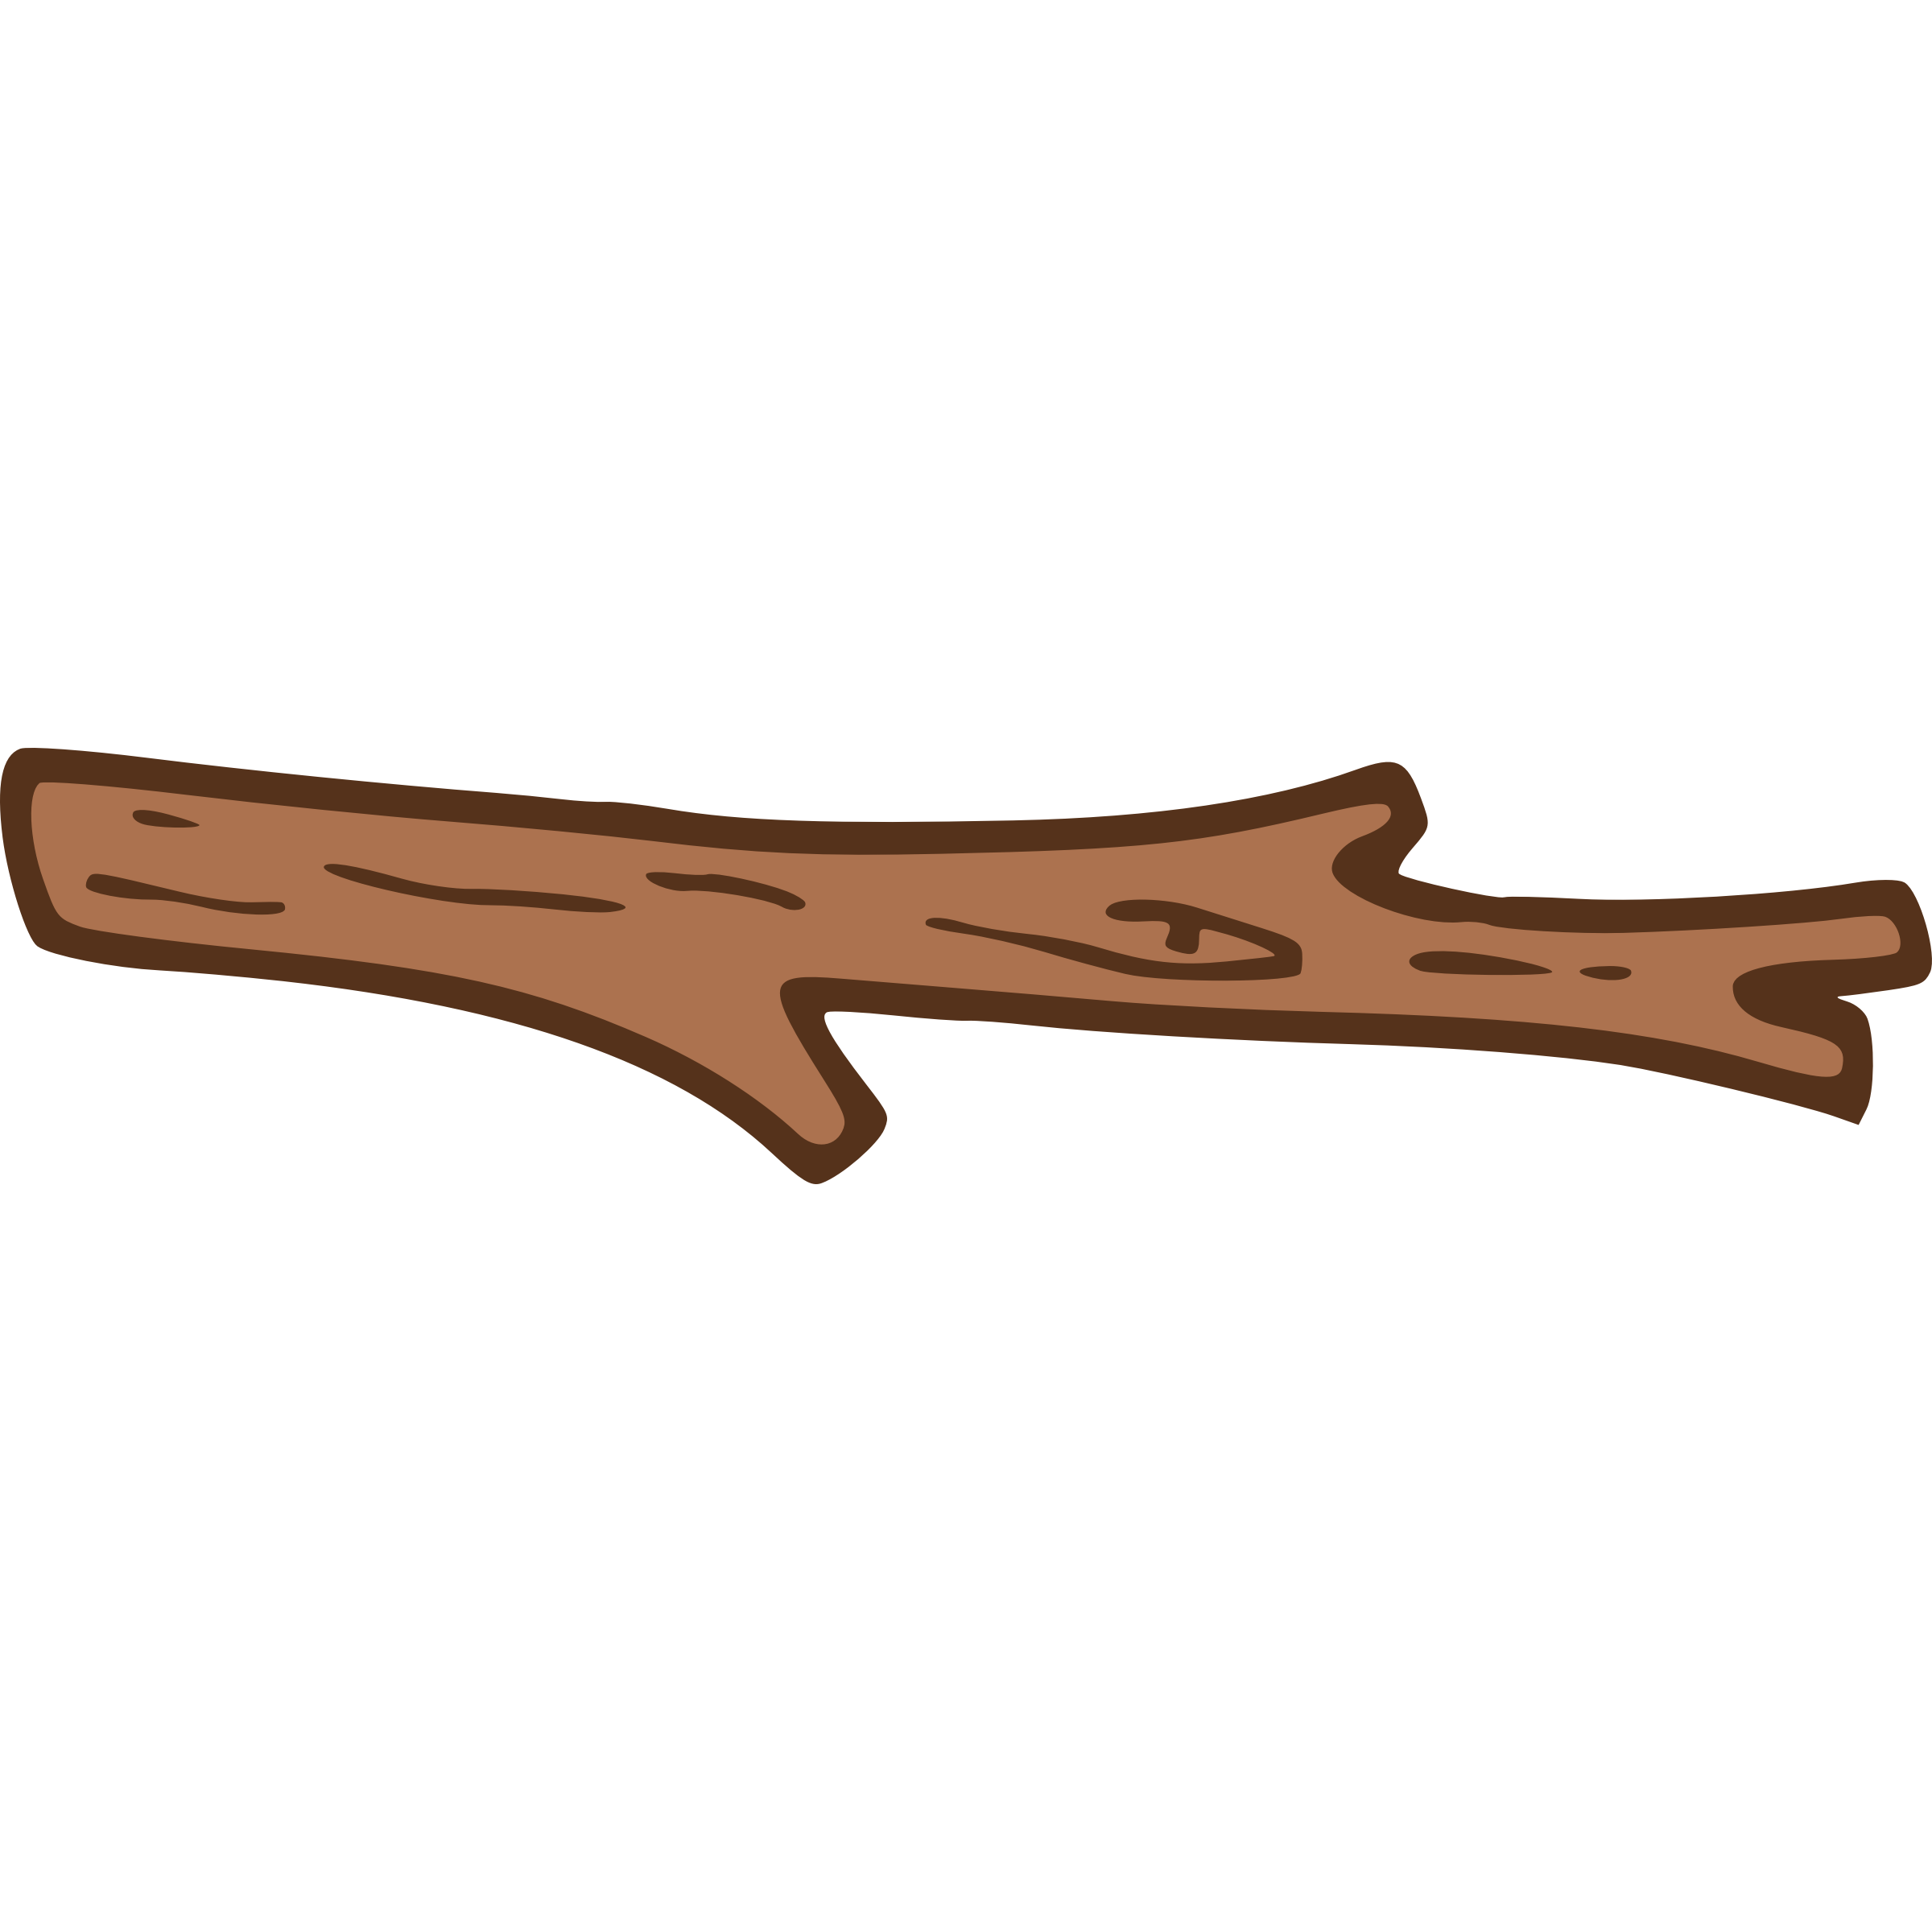 wooden stick clipart